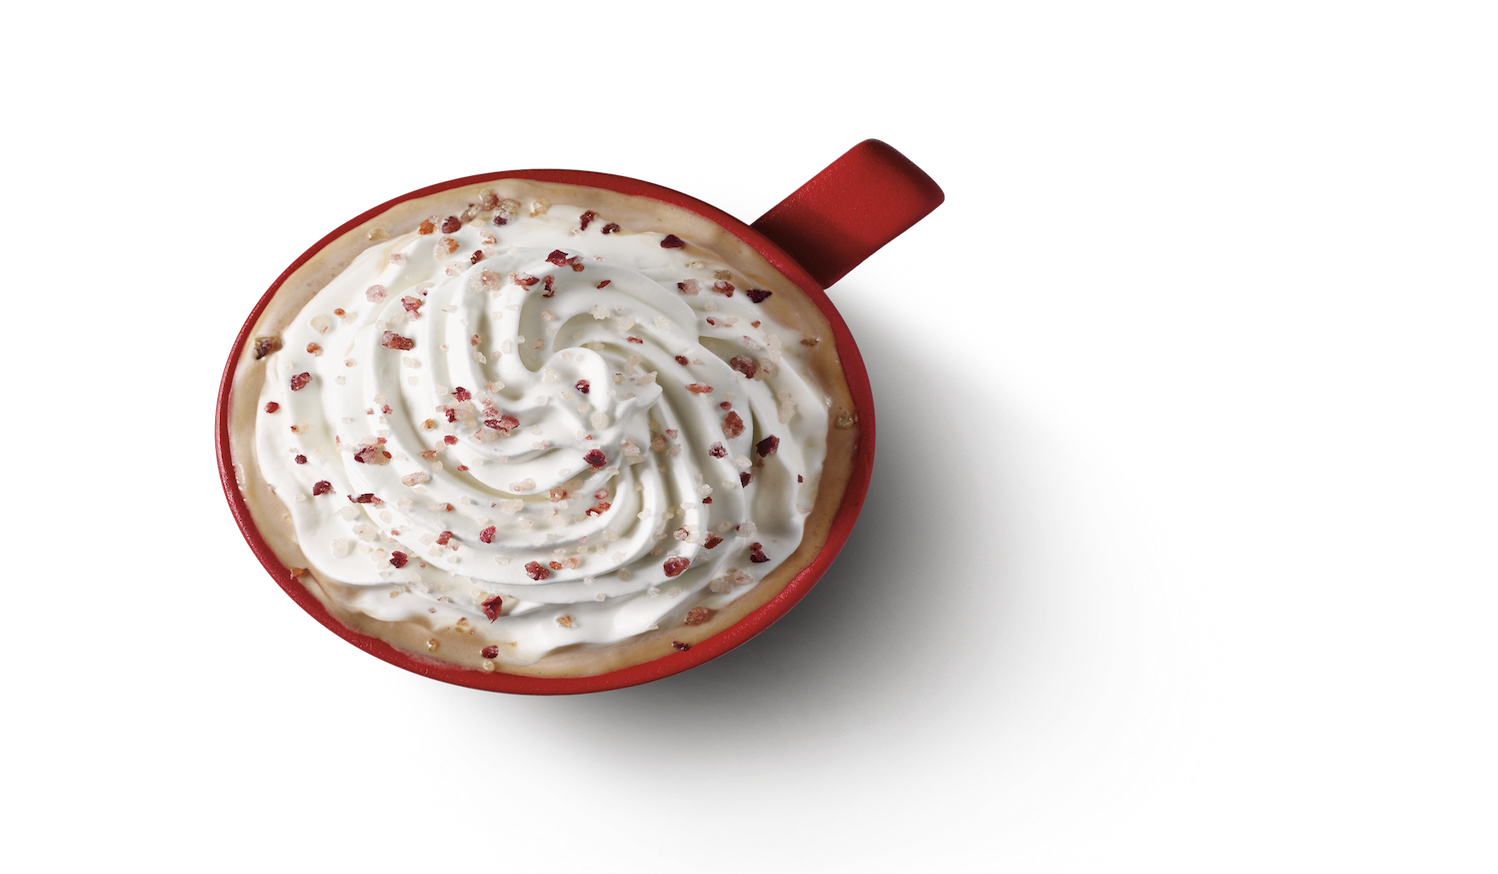 Starbucks introduces NEW Holiday Beverage!